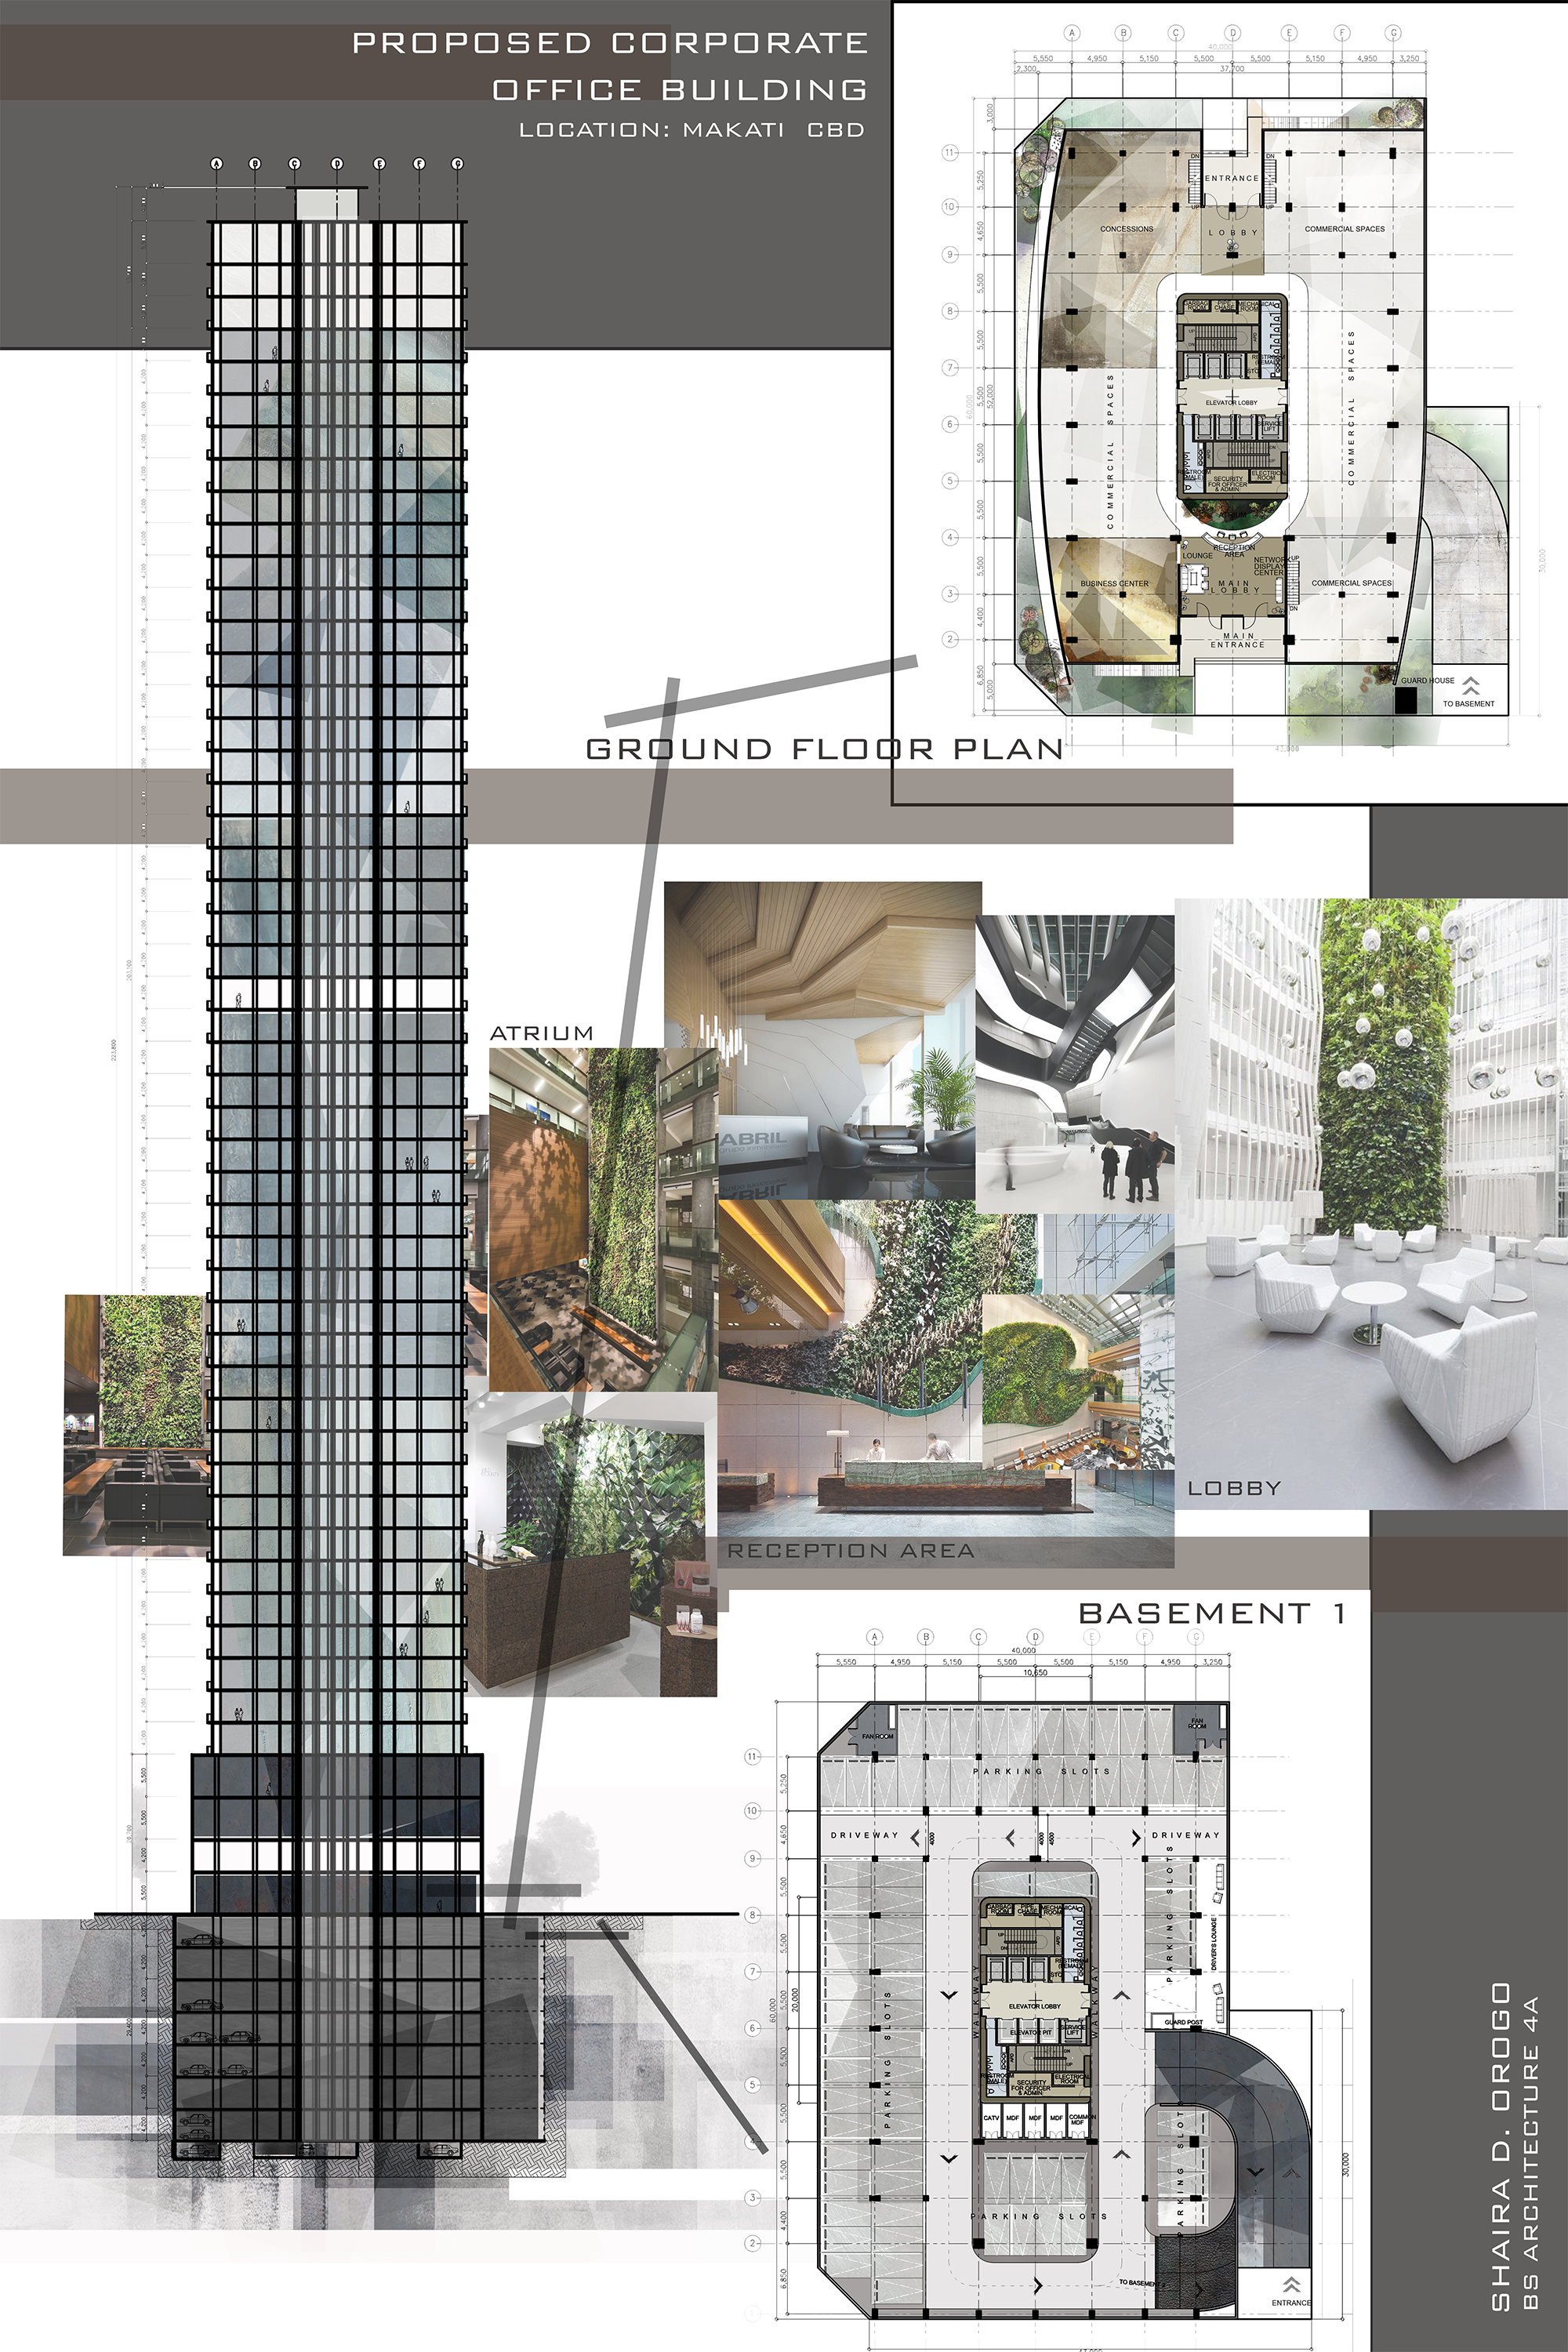 Design 8 / Proposed Corporate Office Building / High-rise ...